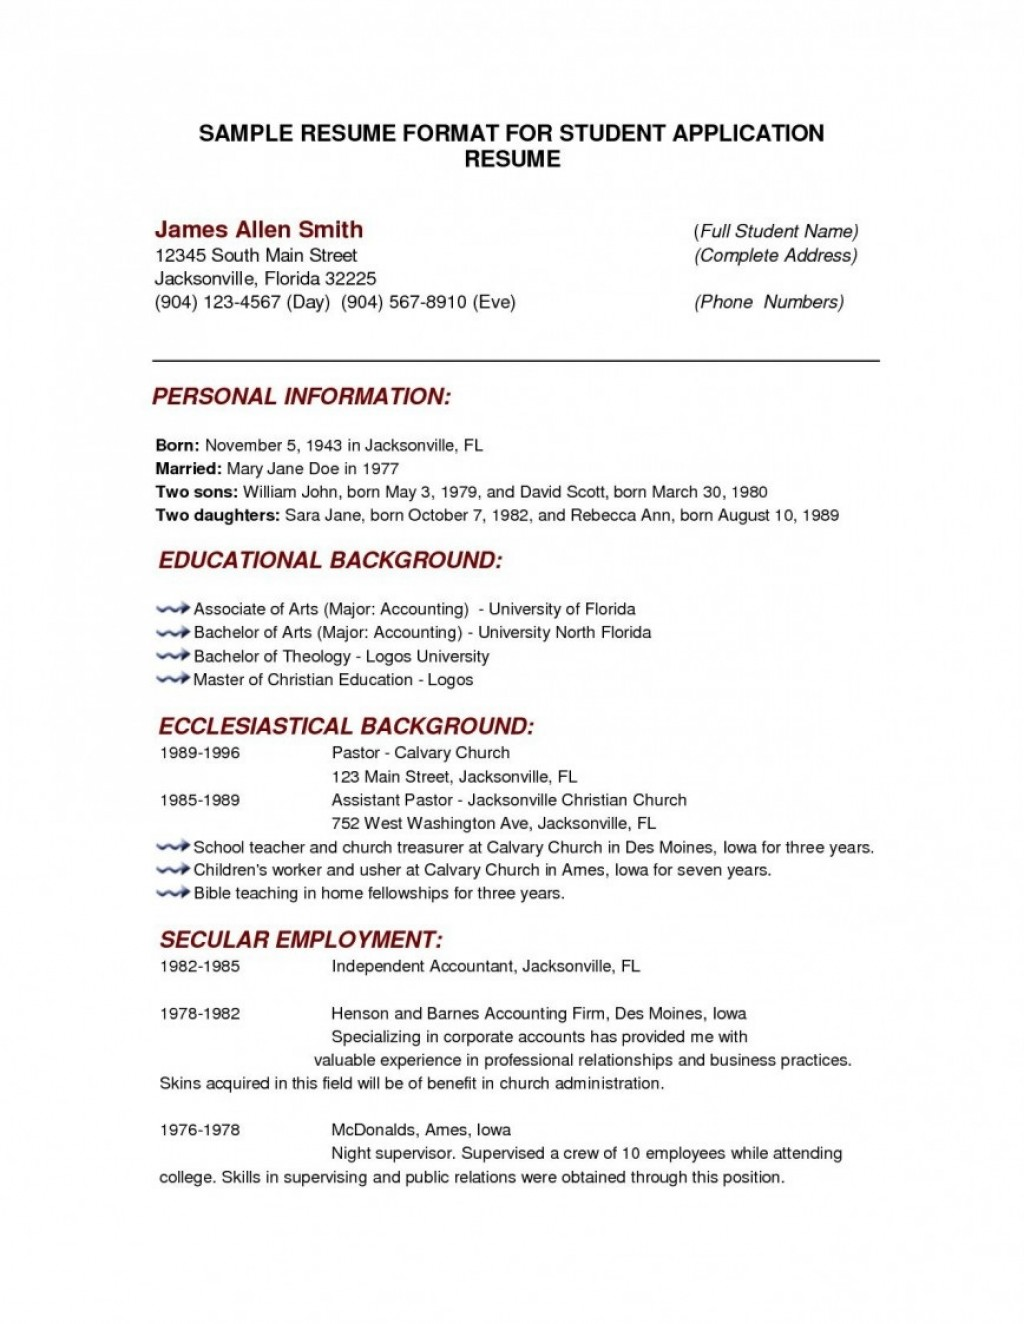 000 Outstanding College Admission Resume Template Highest Quality  Templates App Sample Application Microsoft WordLarge